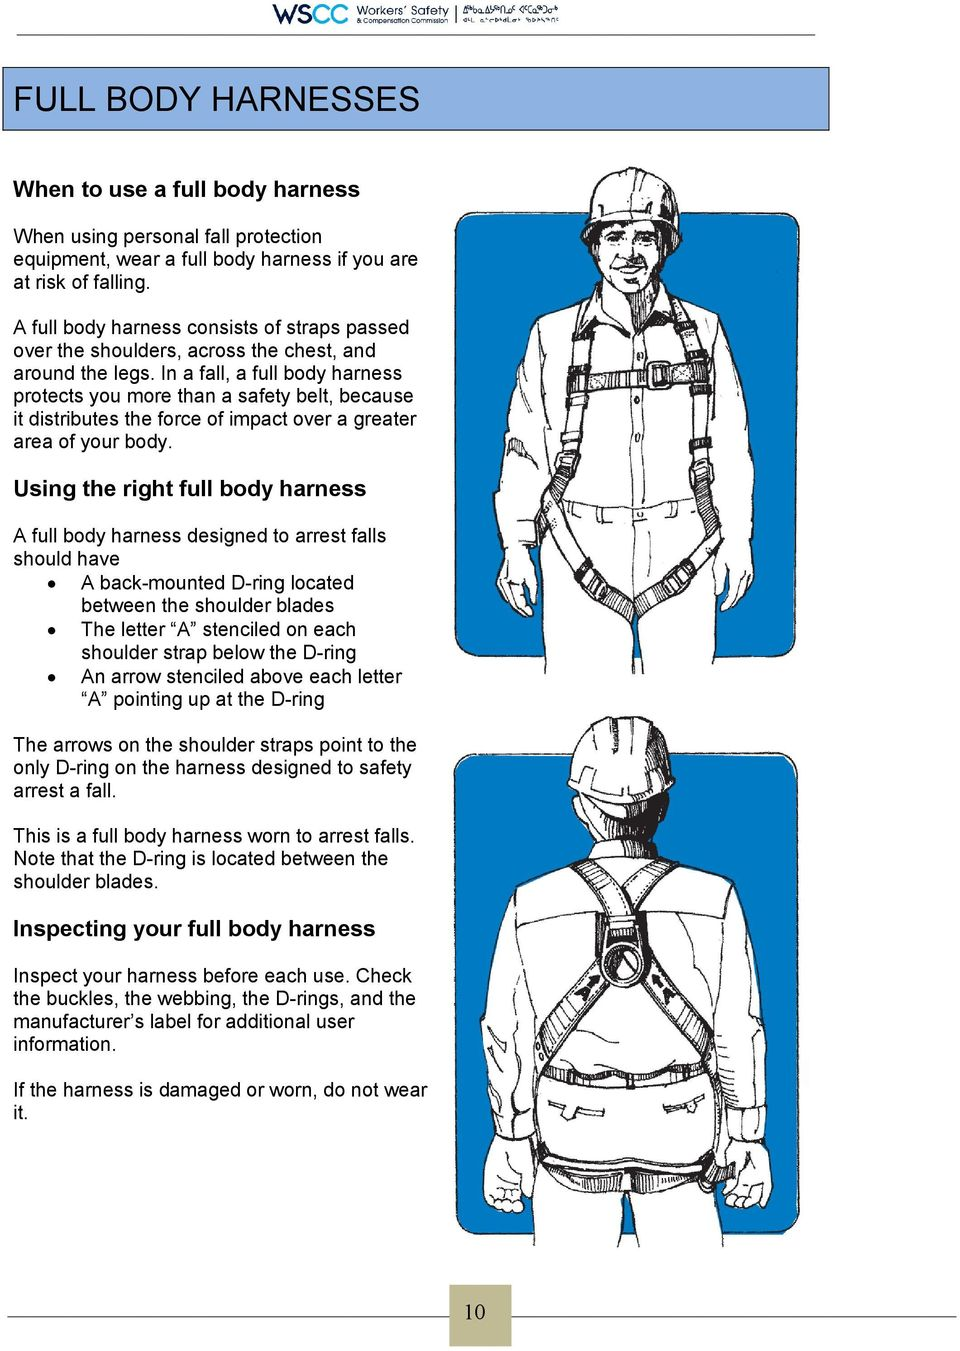 In a fall, a full body harness protects you more than a safety belt, because it distributes the force of impact over a greater area of your body.